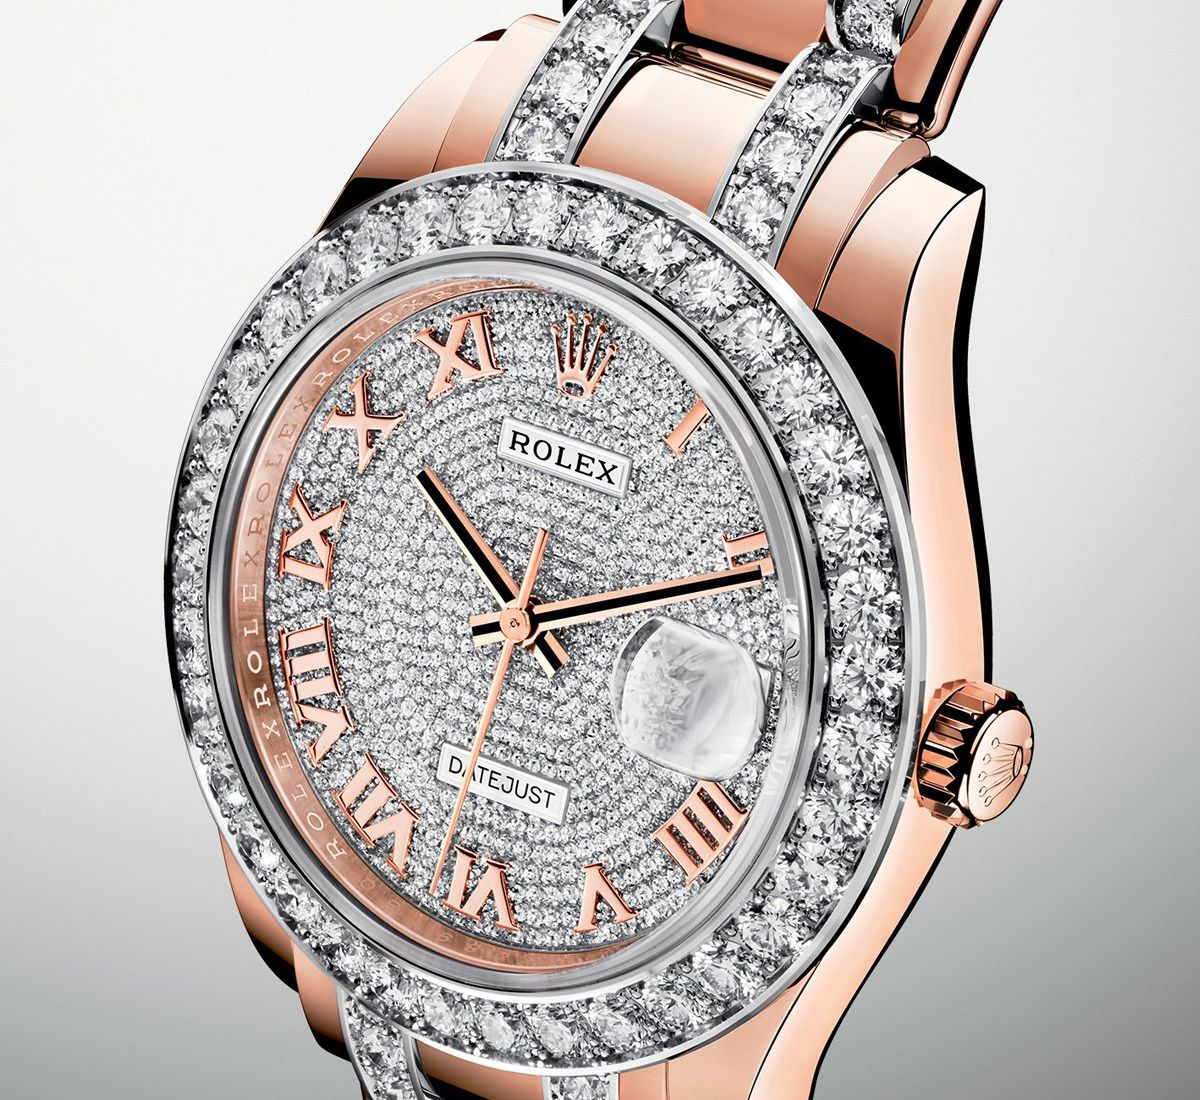 Top 10 Rolex watches launched at Baselworld